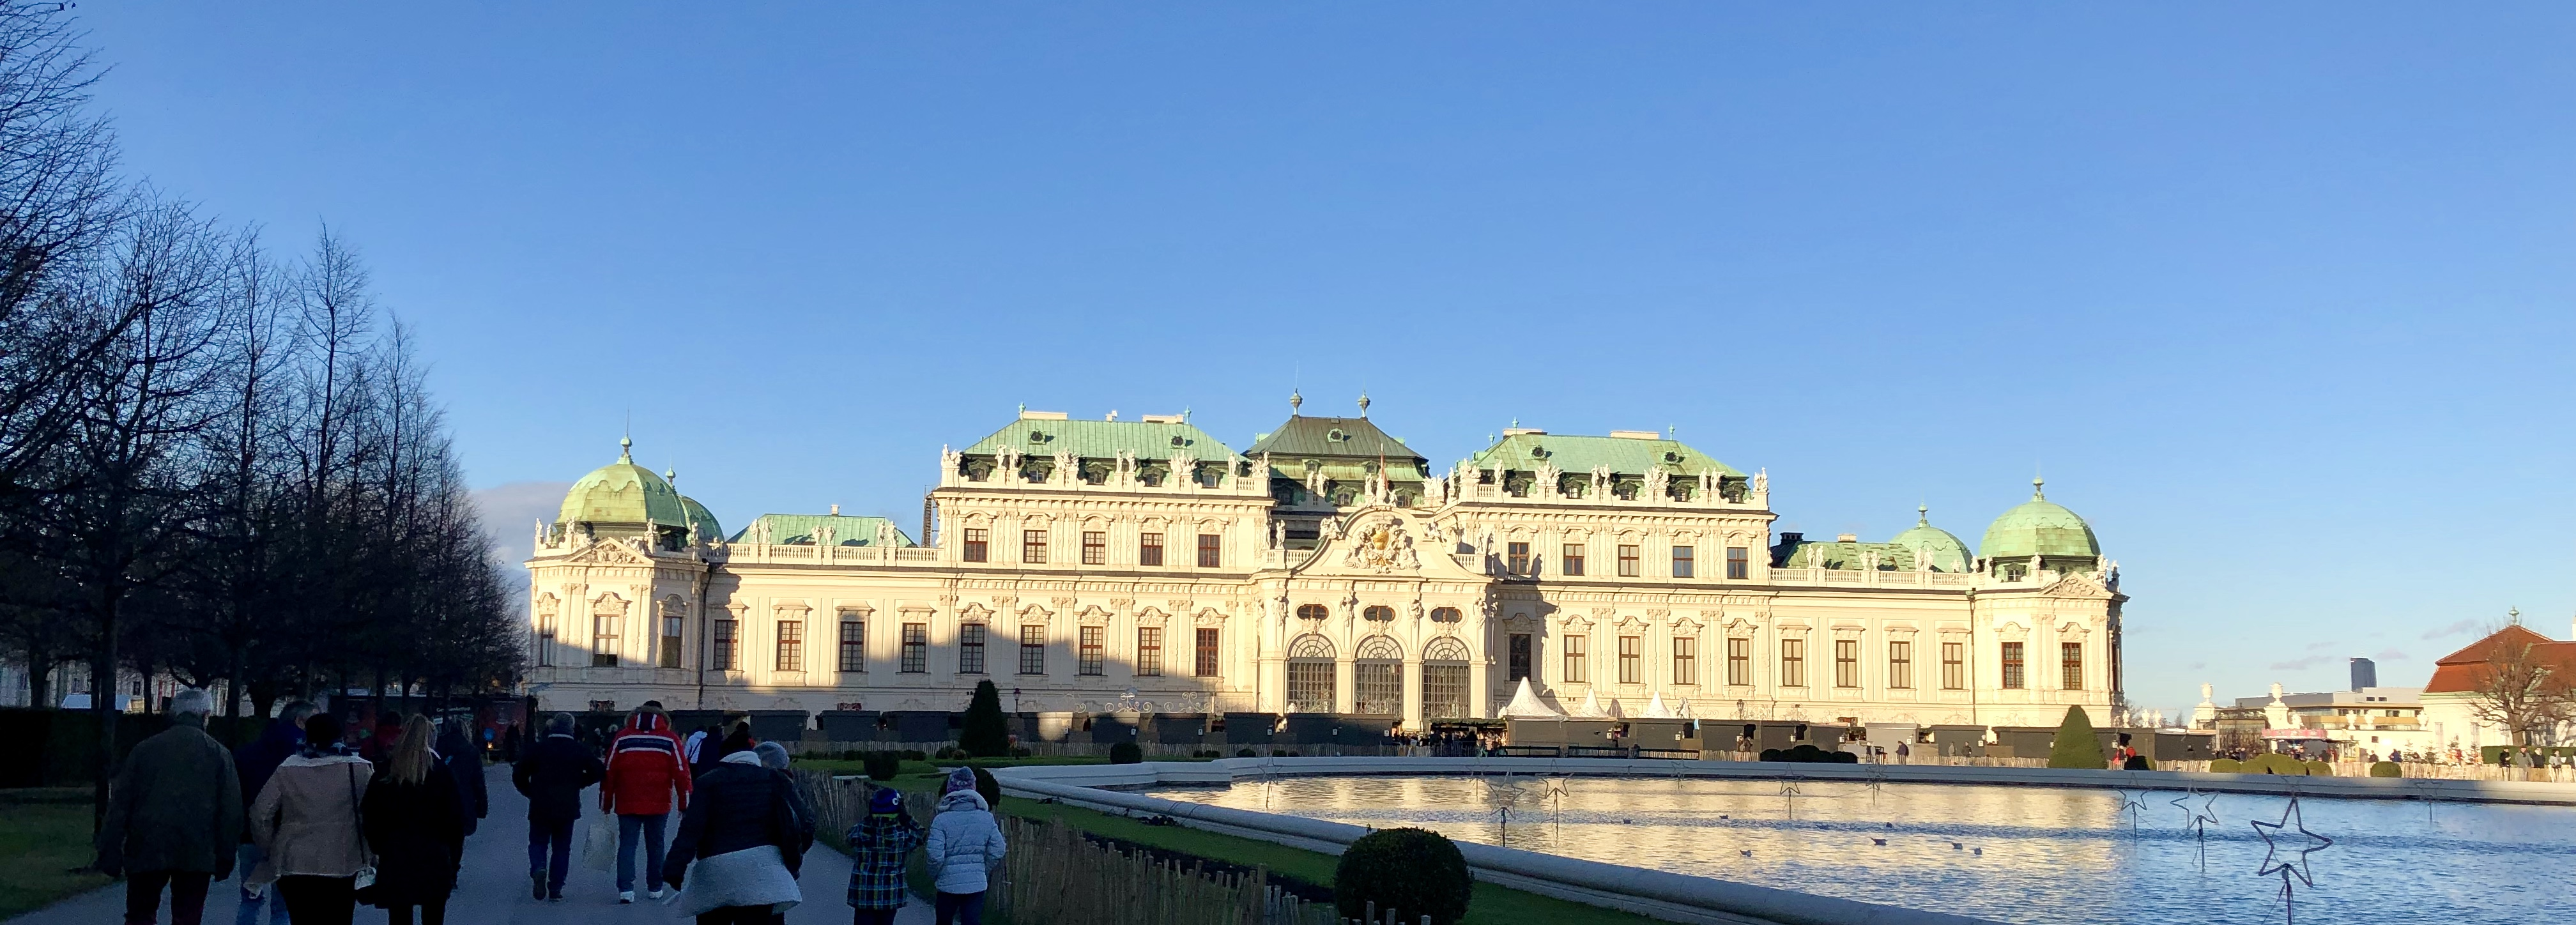 Panoramic shot of the Belvedere Palace, Vienna